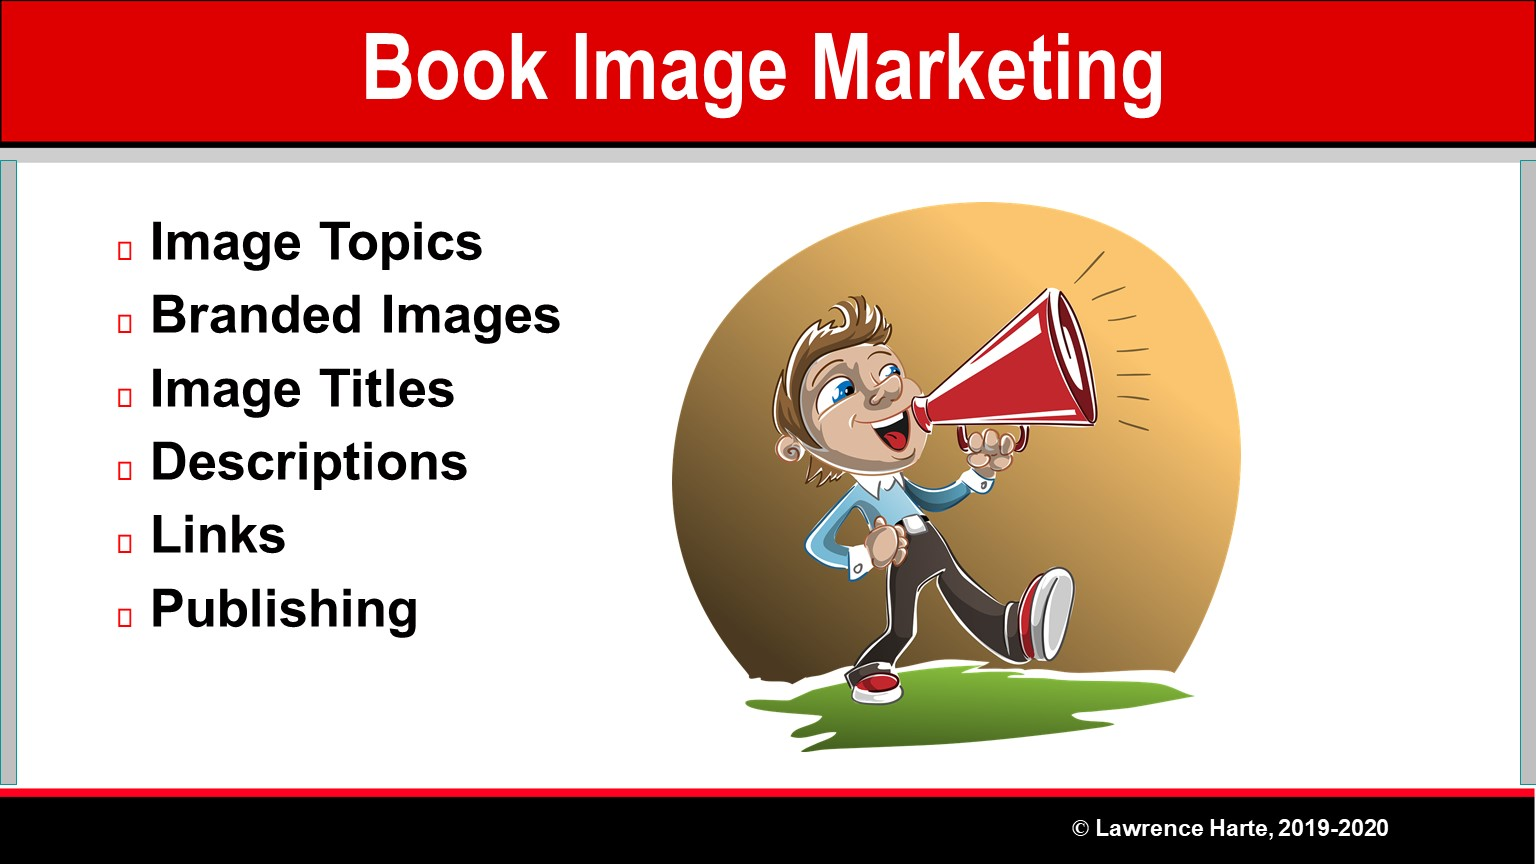 Book Pre-Launch Marketing Image Promotion